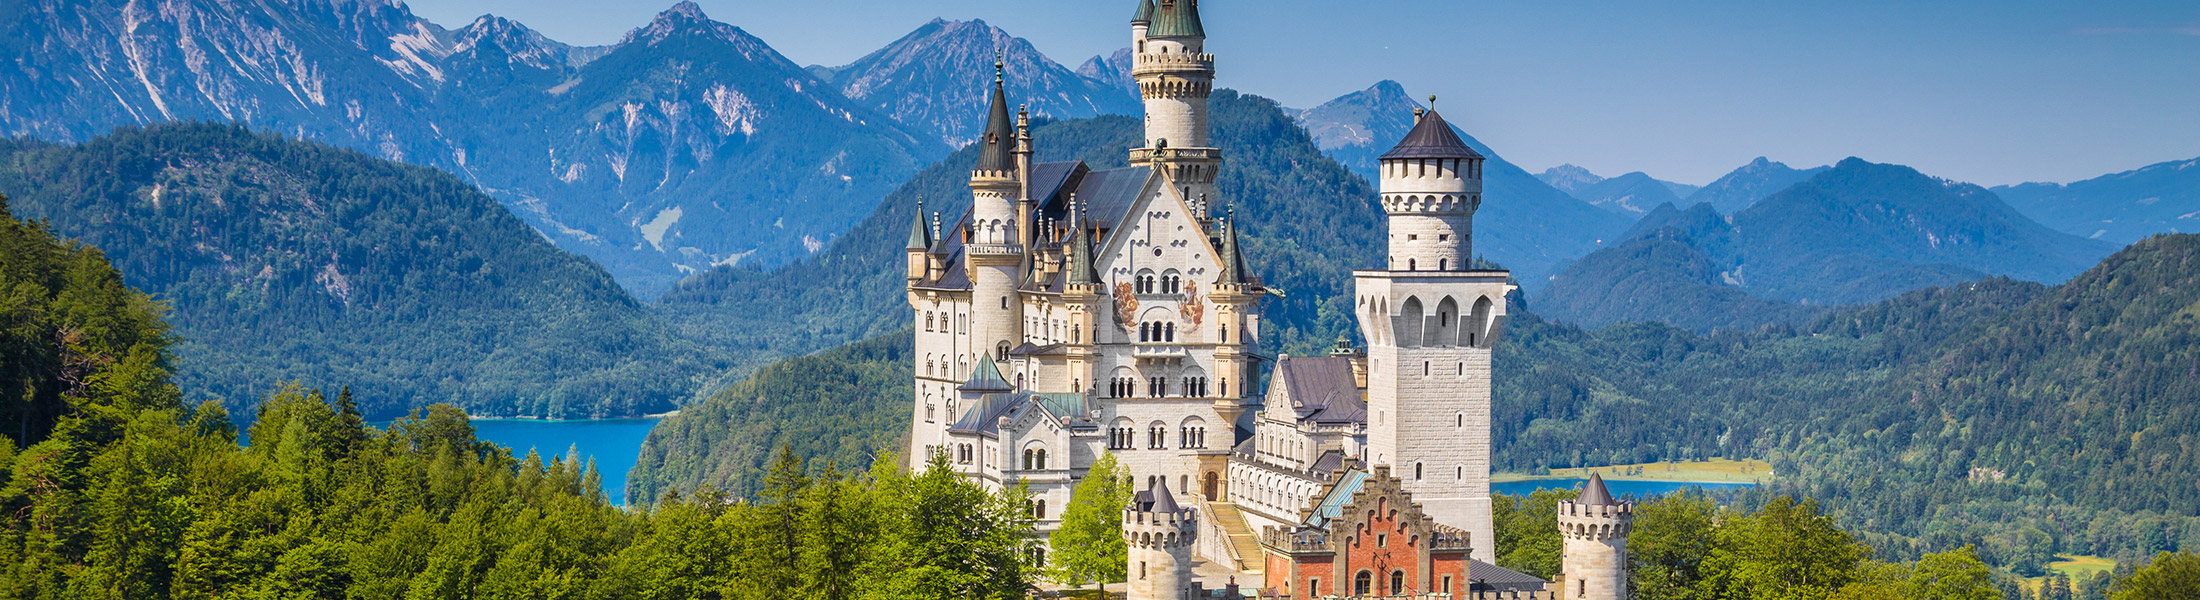 Neuschwanstein Castle with mountains in Germany Europe